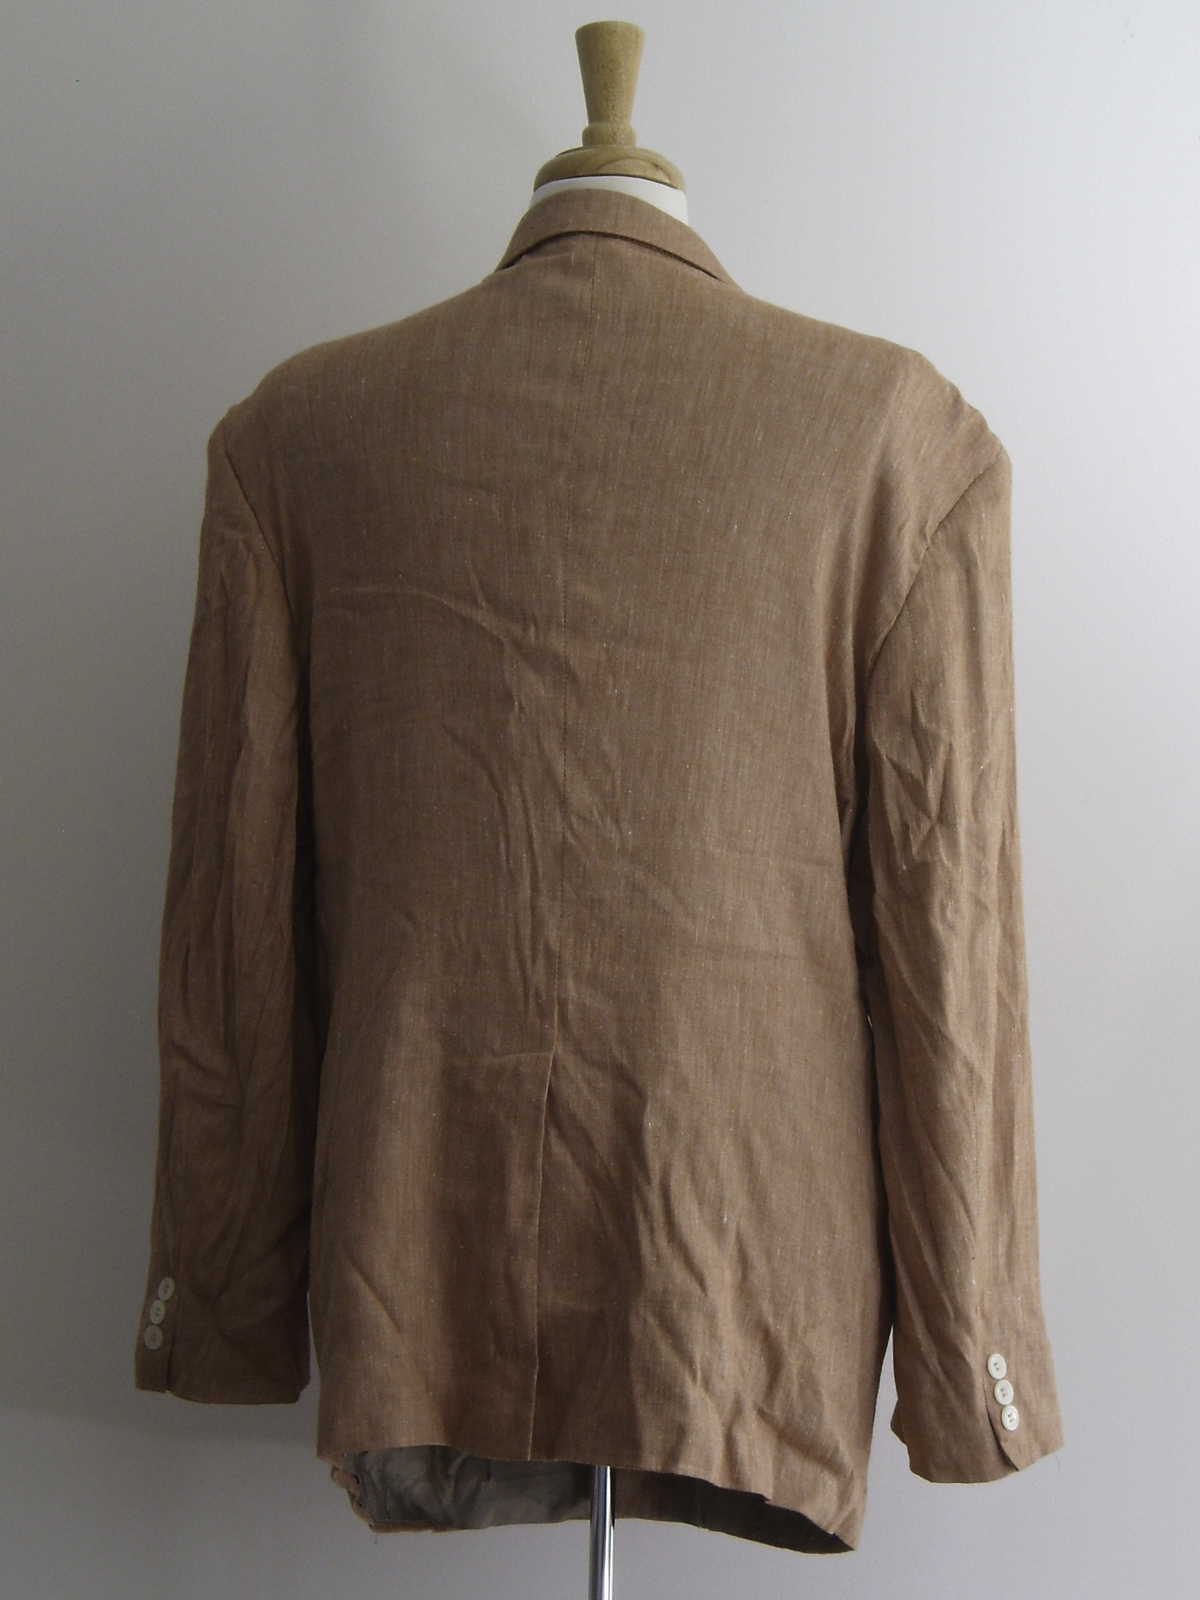 Reunion Jacket 1953 Variation 3 Rear